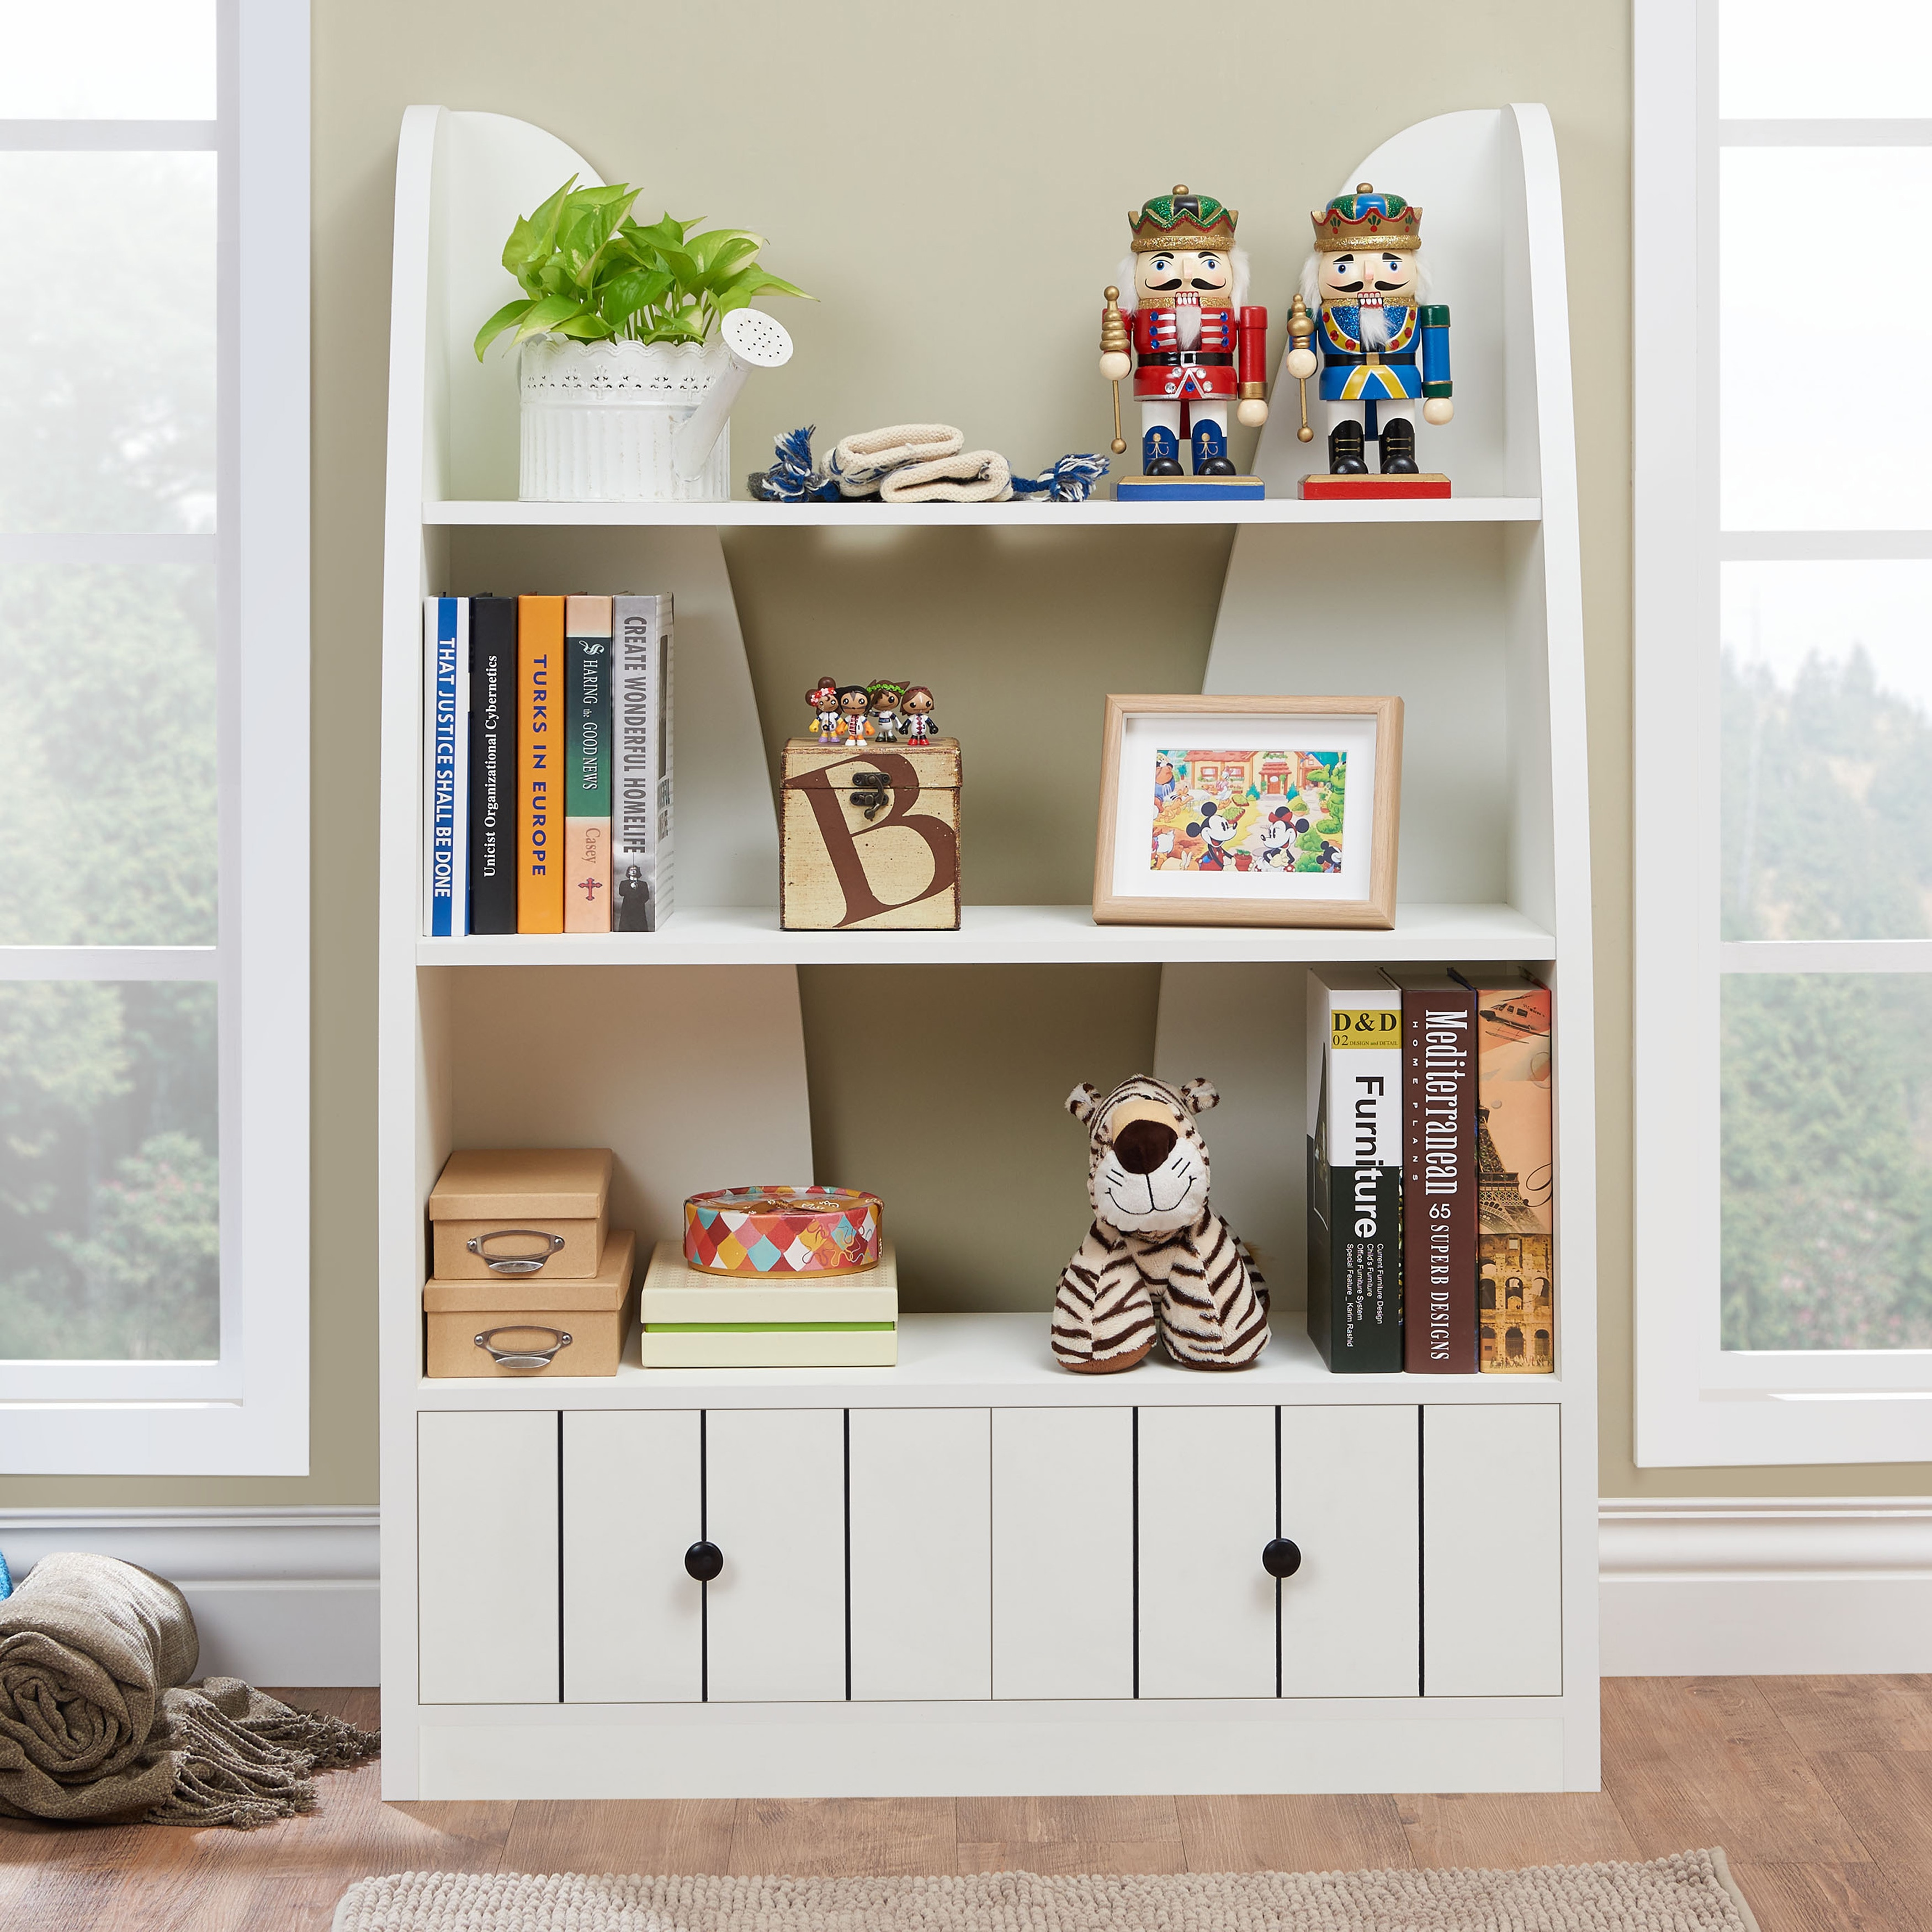 hu z cottage bookcase dmgthhbbm kidkraft full res babahaz emag babah pd bookcases